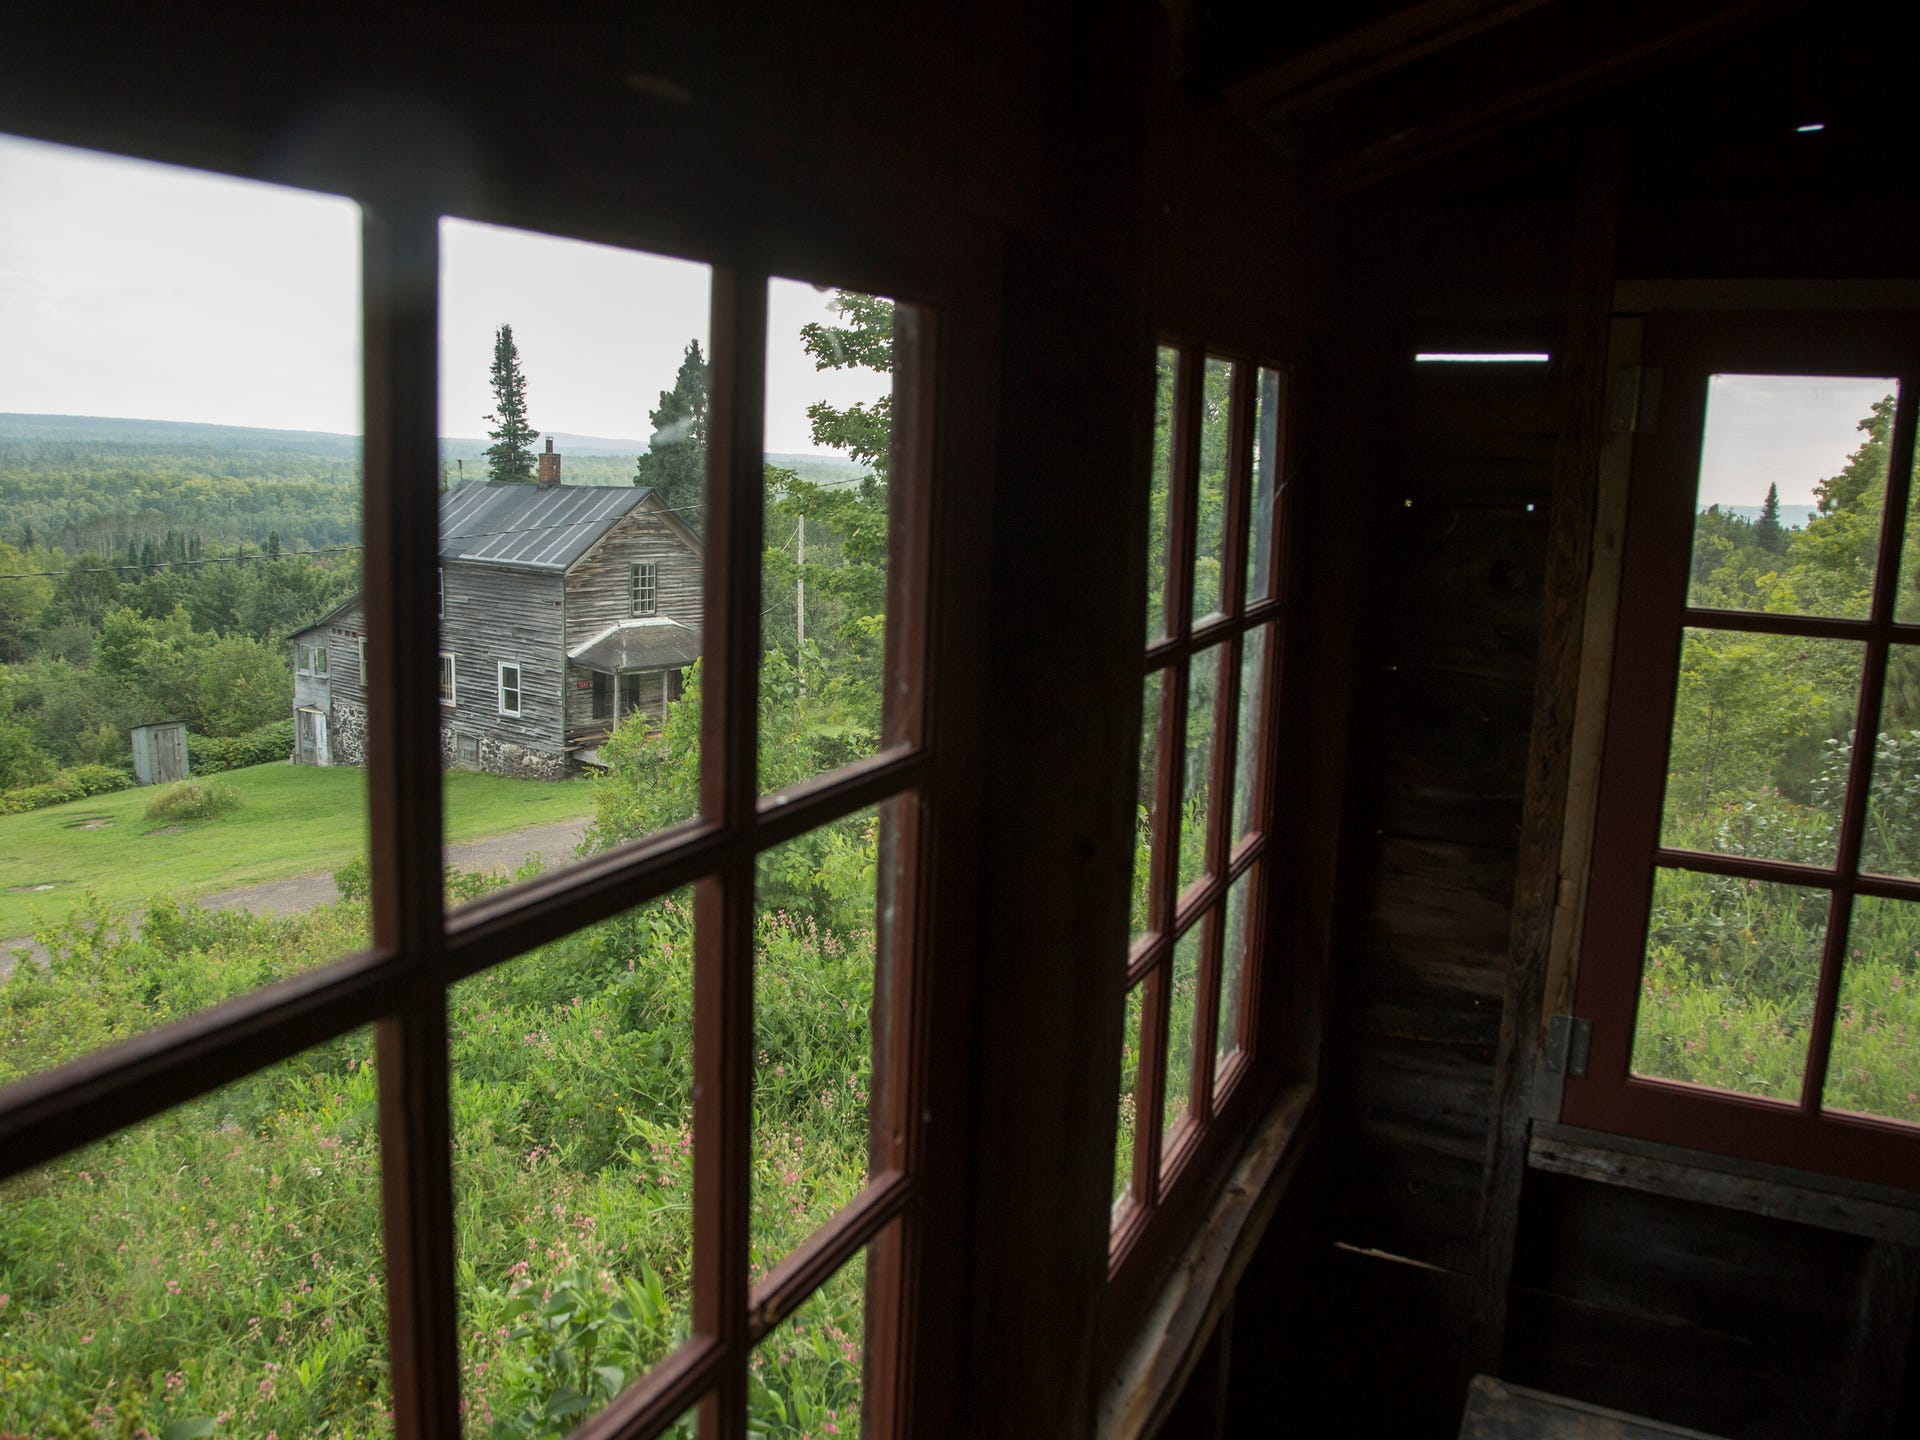 The view from an empty house in the town of Central